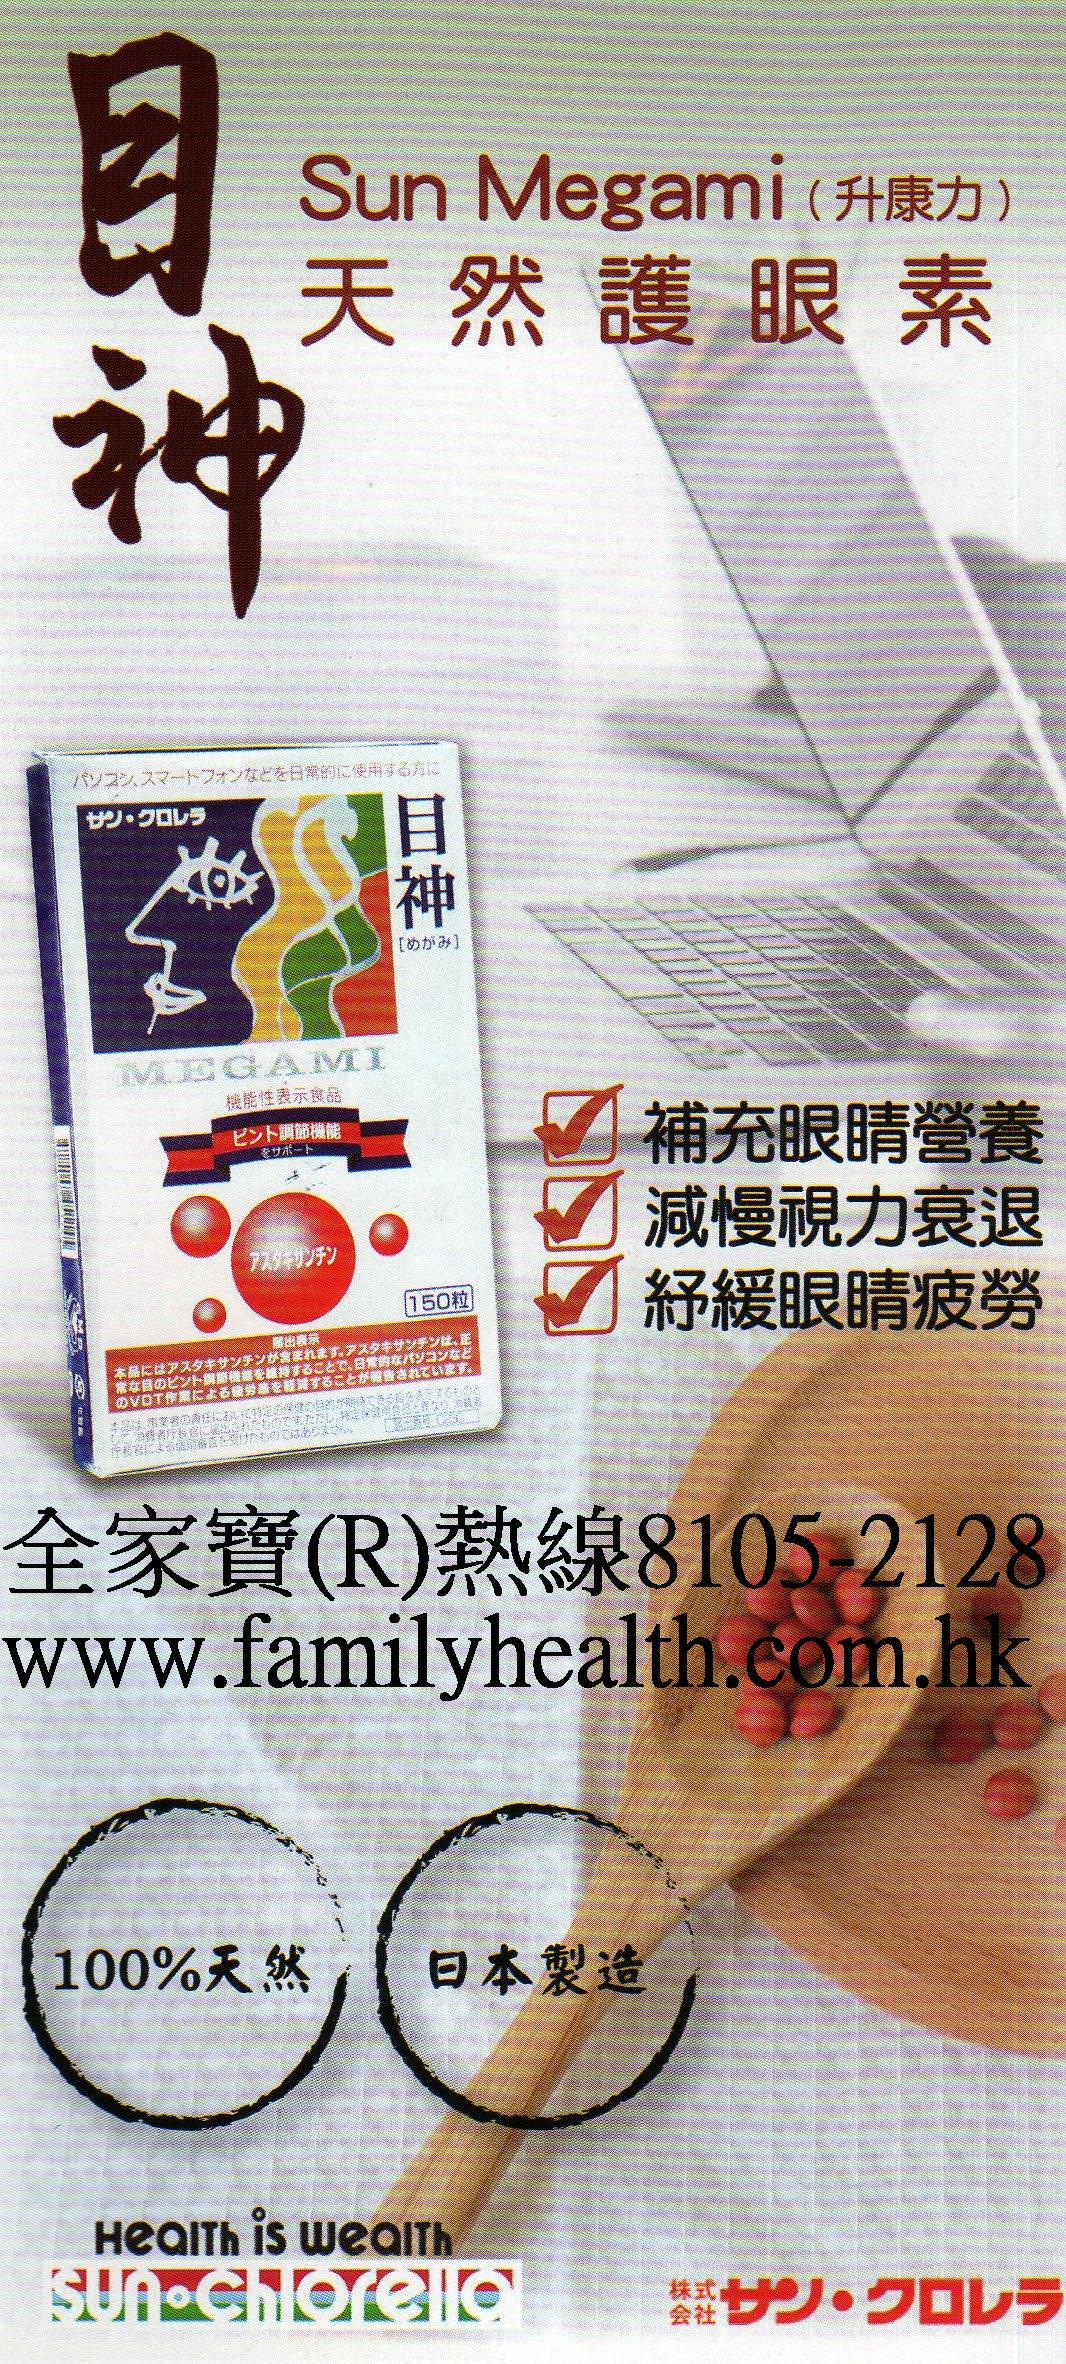 http://www.familyhealth.com.hk/files/full/1031_0.jpg